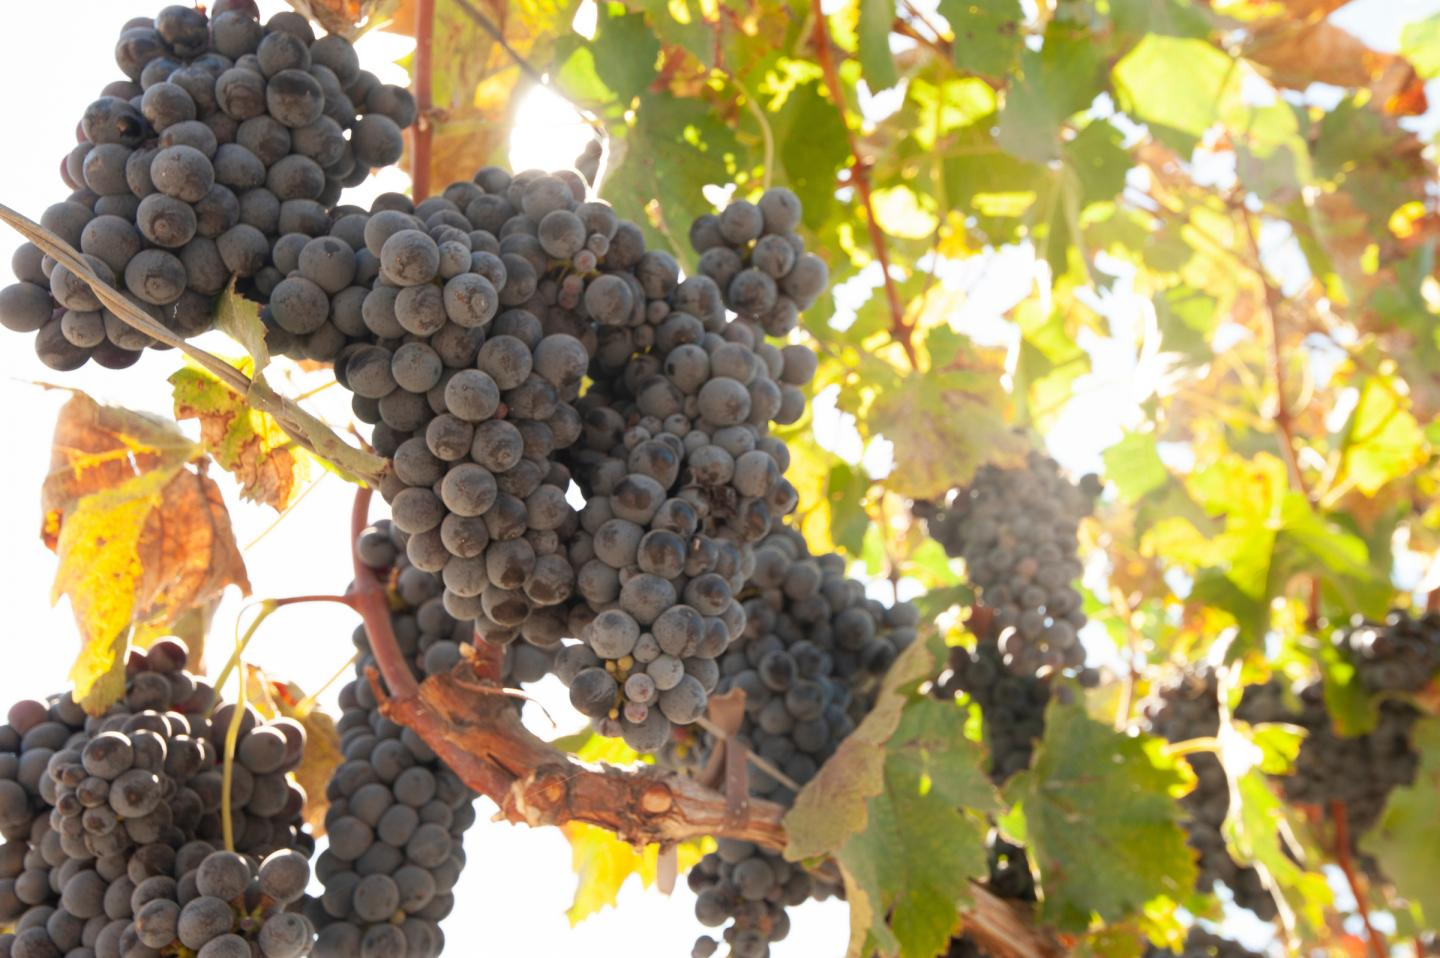 Uncovering the Genetic Basis of Hermaphroditism in Grapes, the Trait That Allowed Domestication